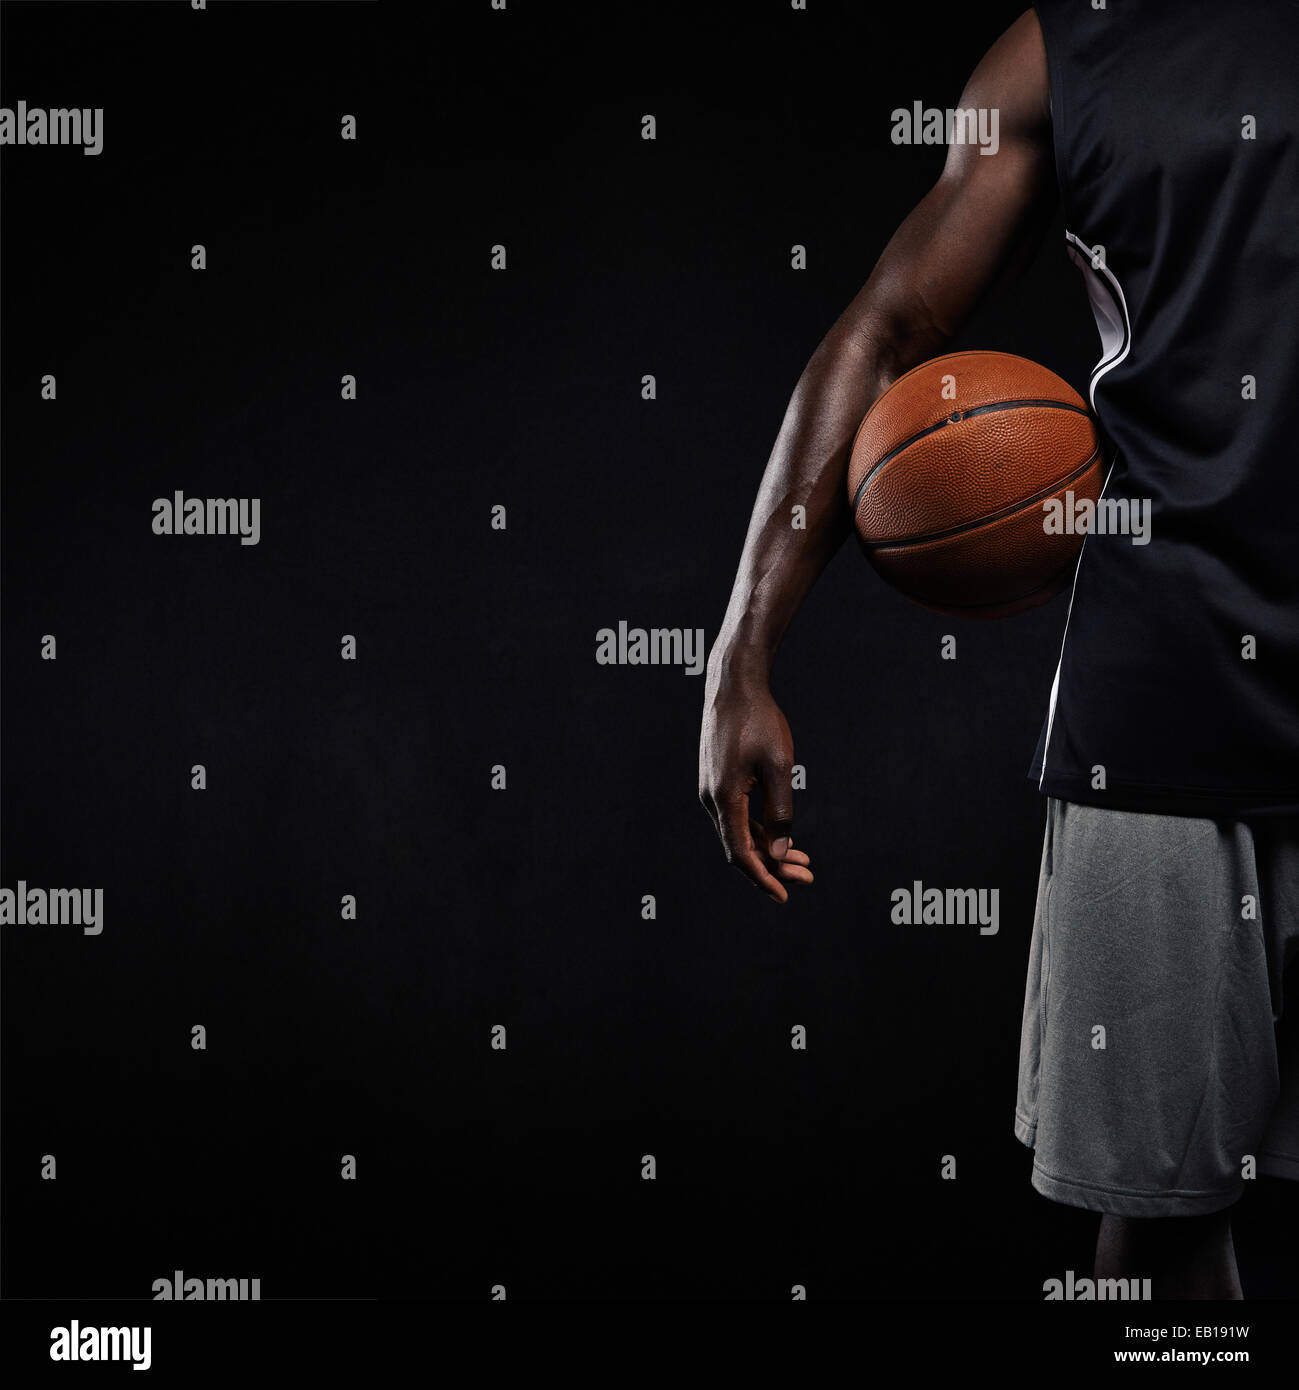 Cropped image of black basketball player standing with a basket ball. Man in sportswear holding basketball with - Stock Image